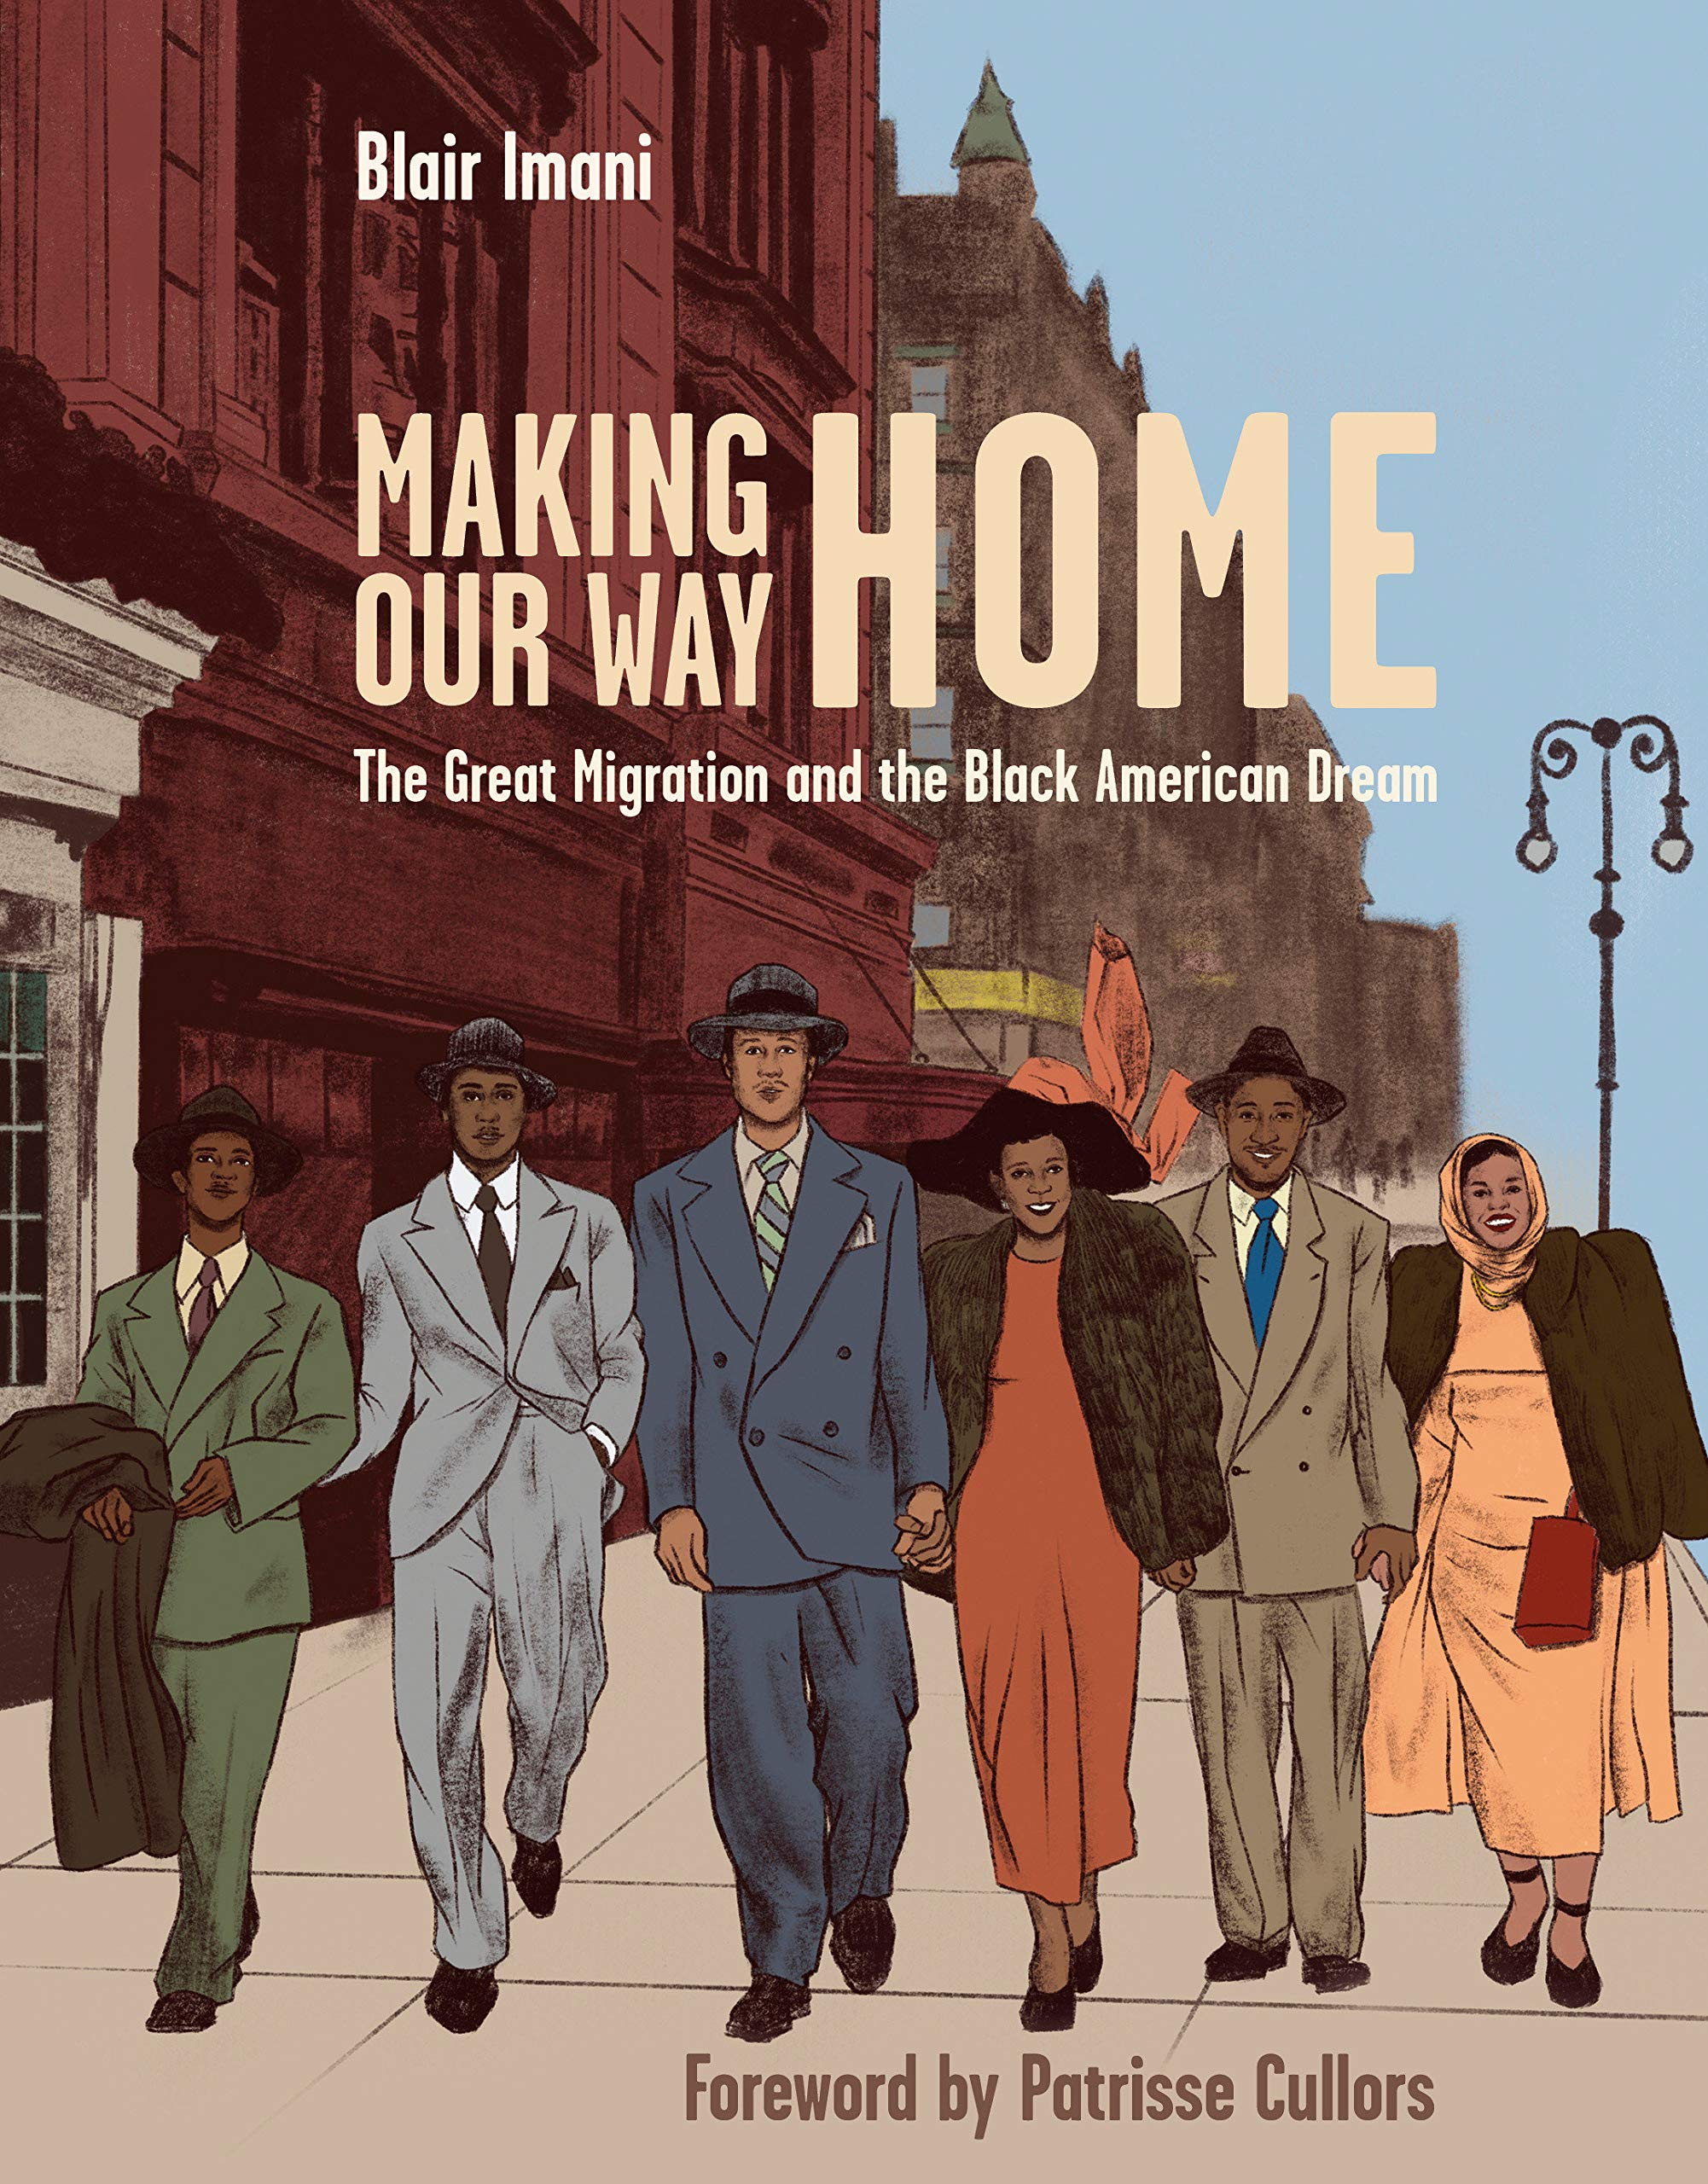 Making Our Way Home The Great Migration And The Black American Dream Imani Blair Cullors Patrisse 9781984856920 Amazon Com Books